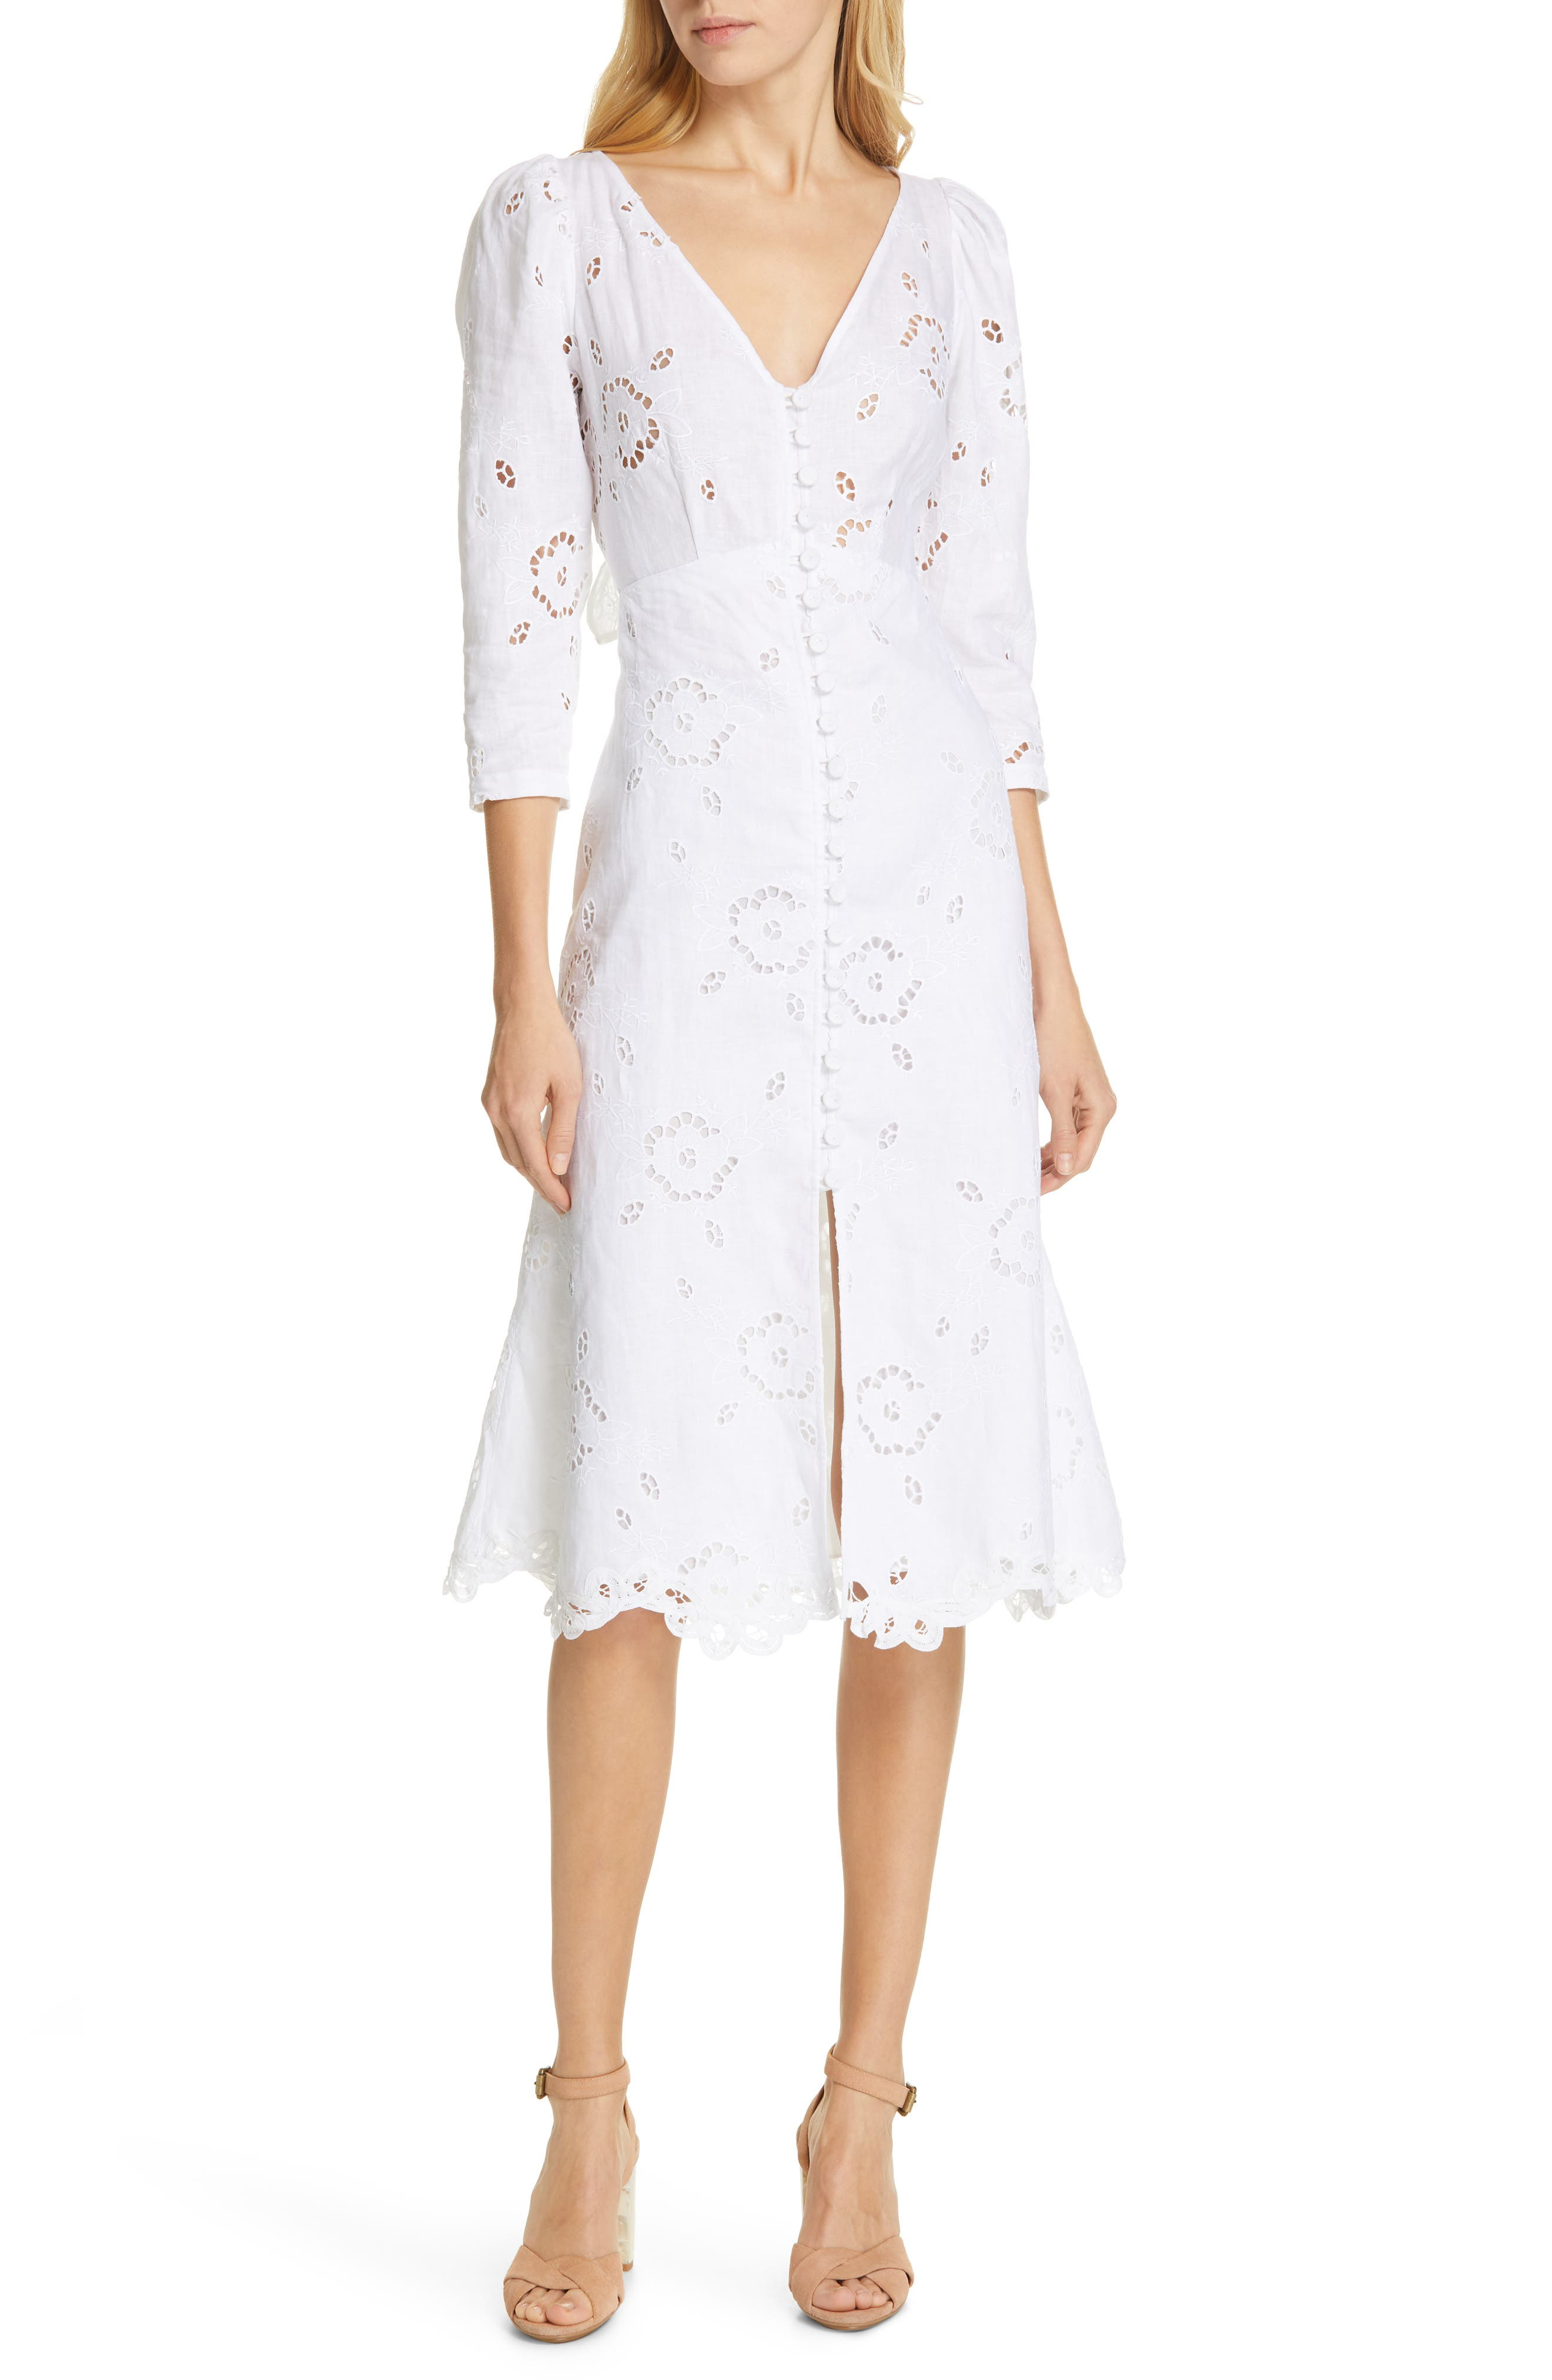 Rebecca Taylor Terri Embroidered A-Line Dress, White